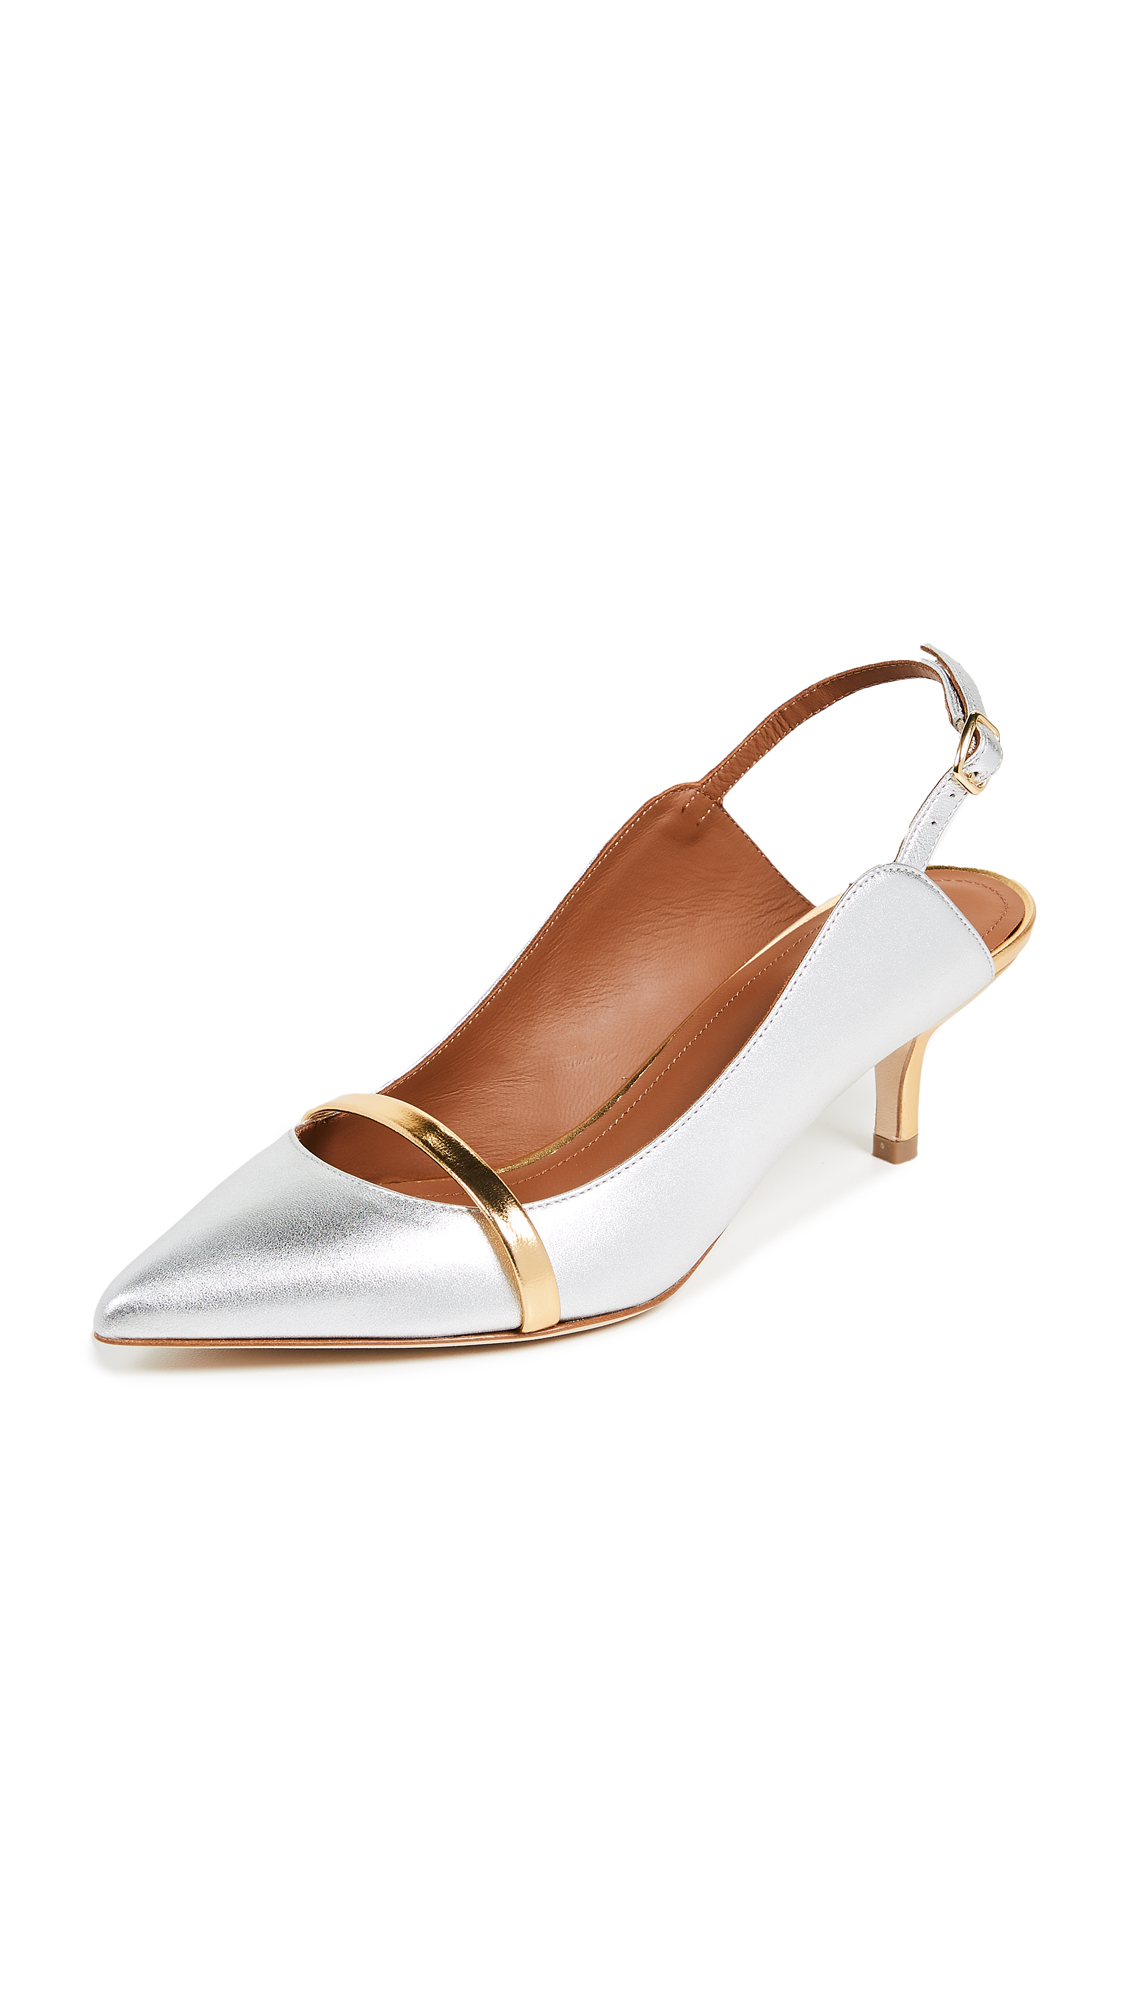 Malone Souliers Marion 45 Slingback Pumps - Silver/Gold